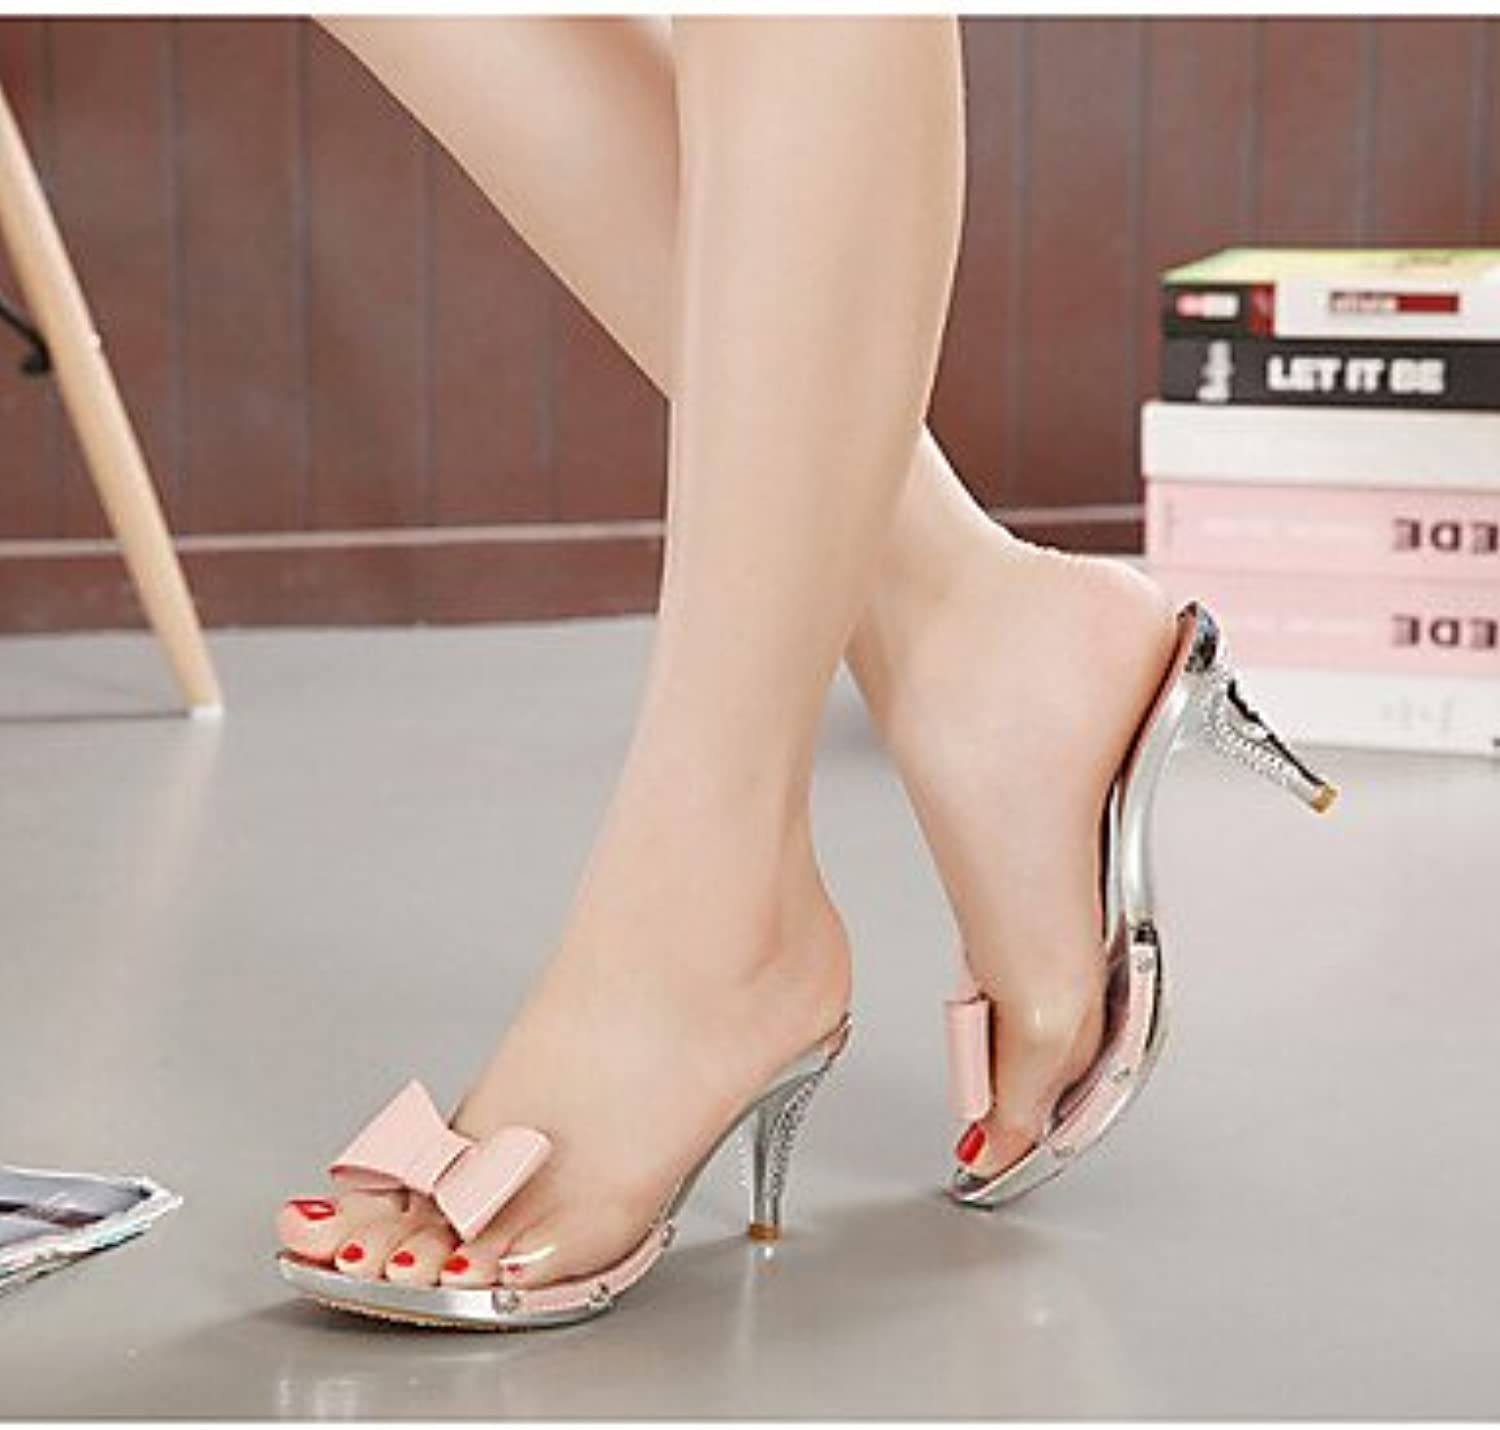 99049dcccdc0a RTRY Women S Summer Rubber Rubber Rubber Casual Kitten Heel Green Pink  White Parent B074CX7GM5 bc6183